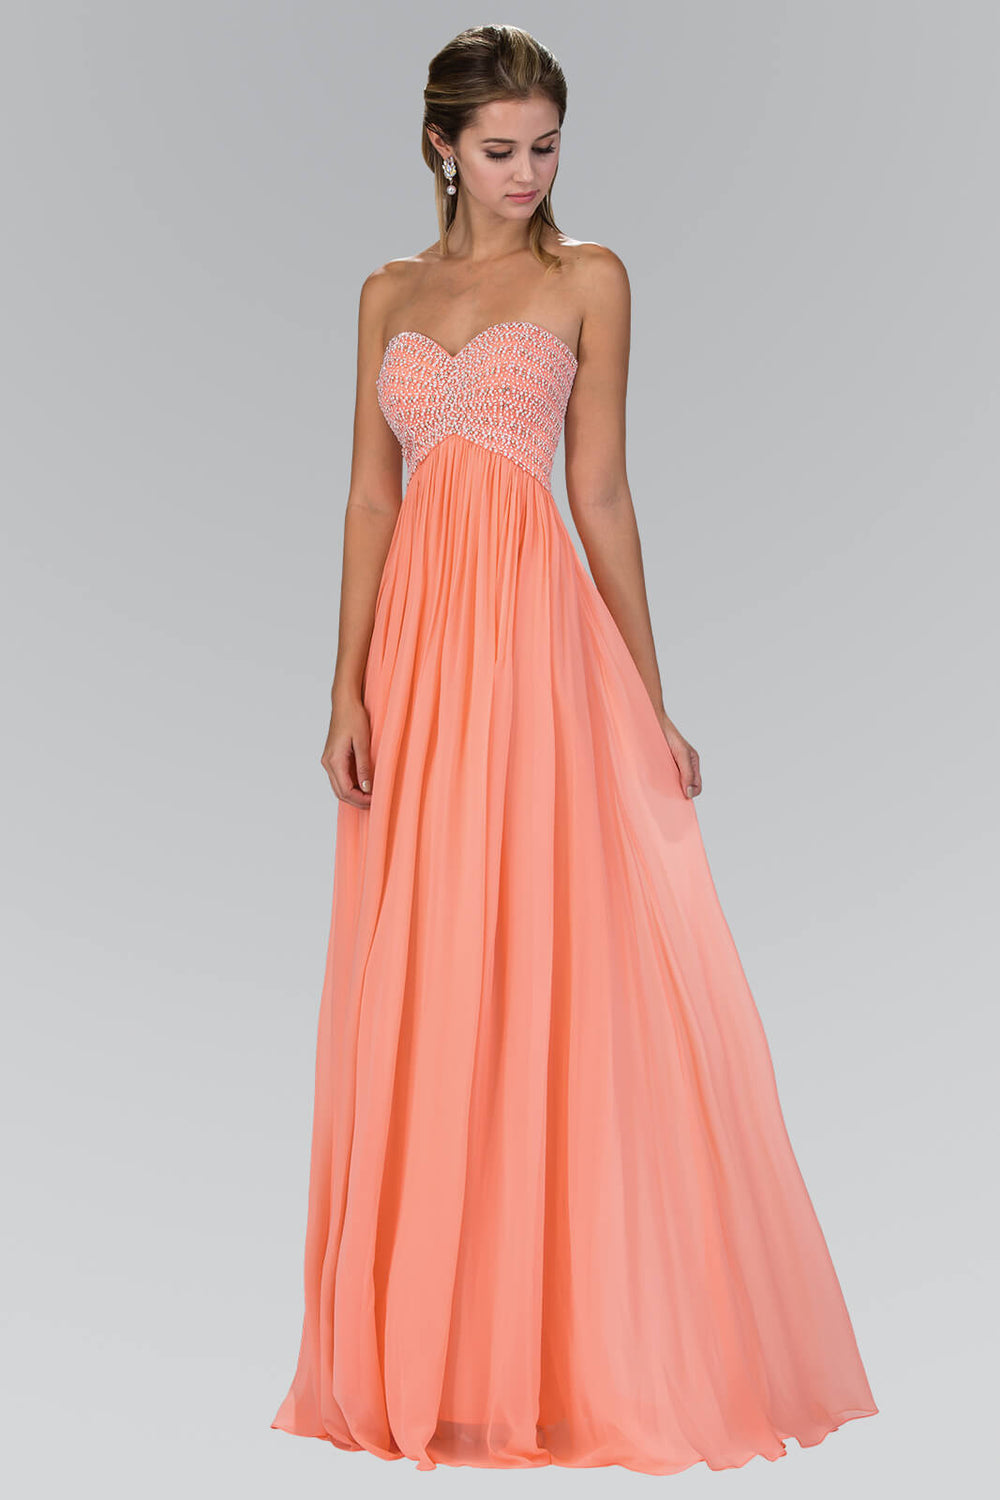 Strapless Long Prom Evening Gown - The Dress Outlet Coral